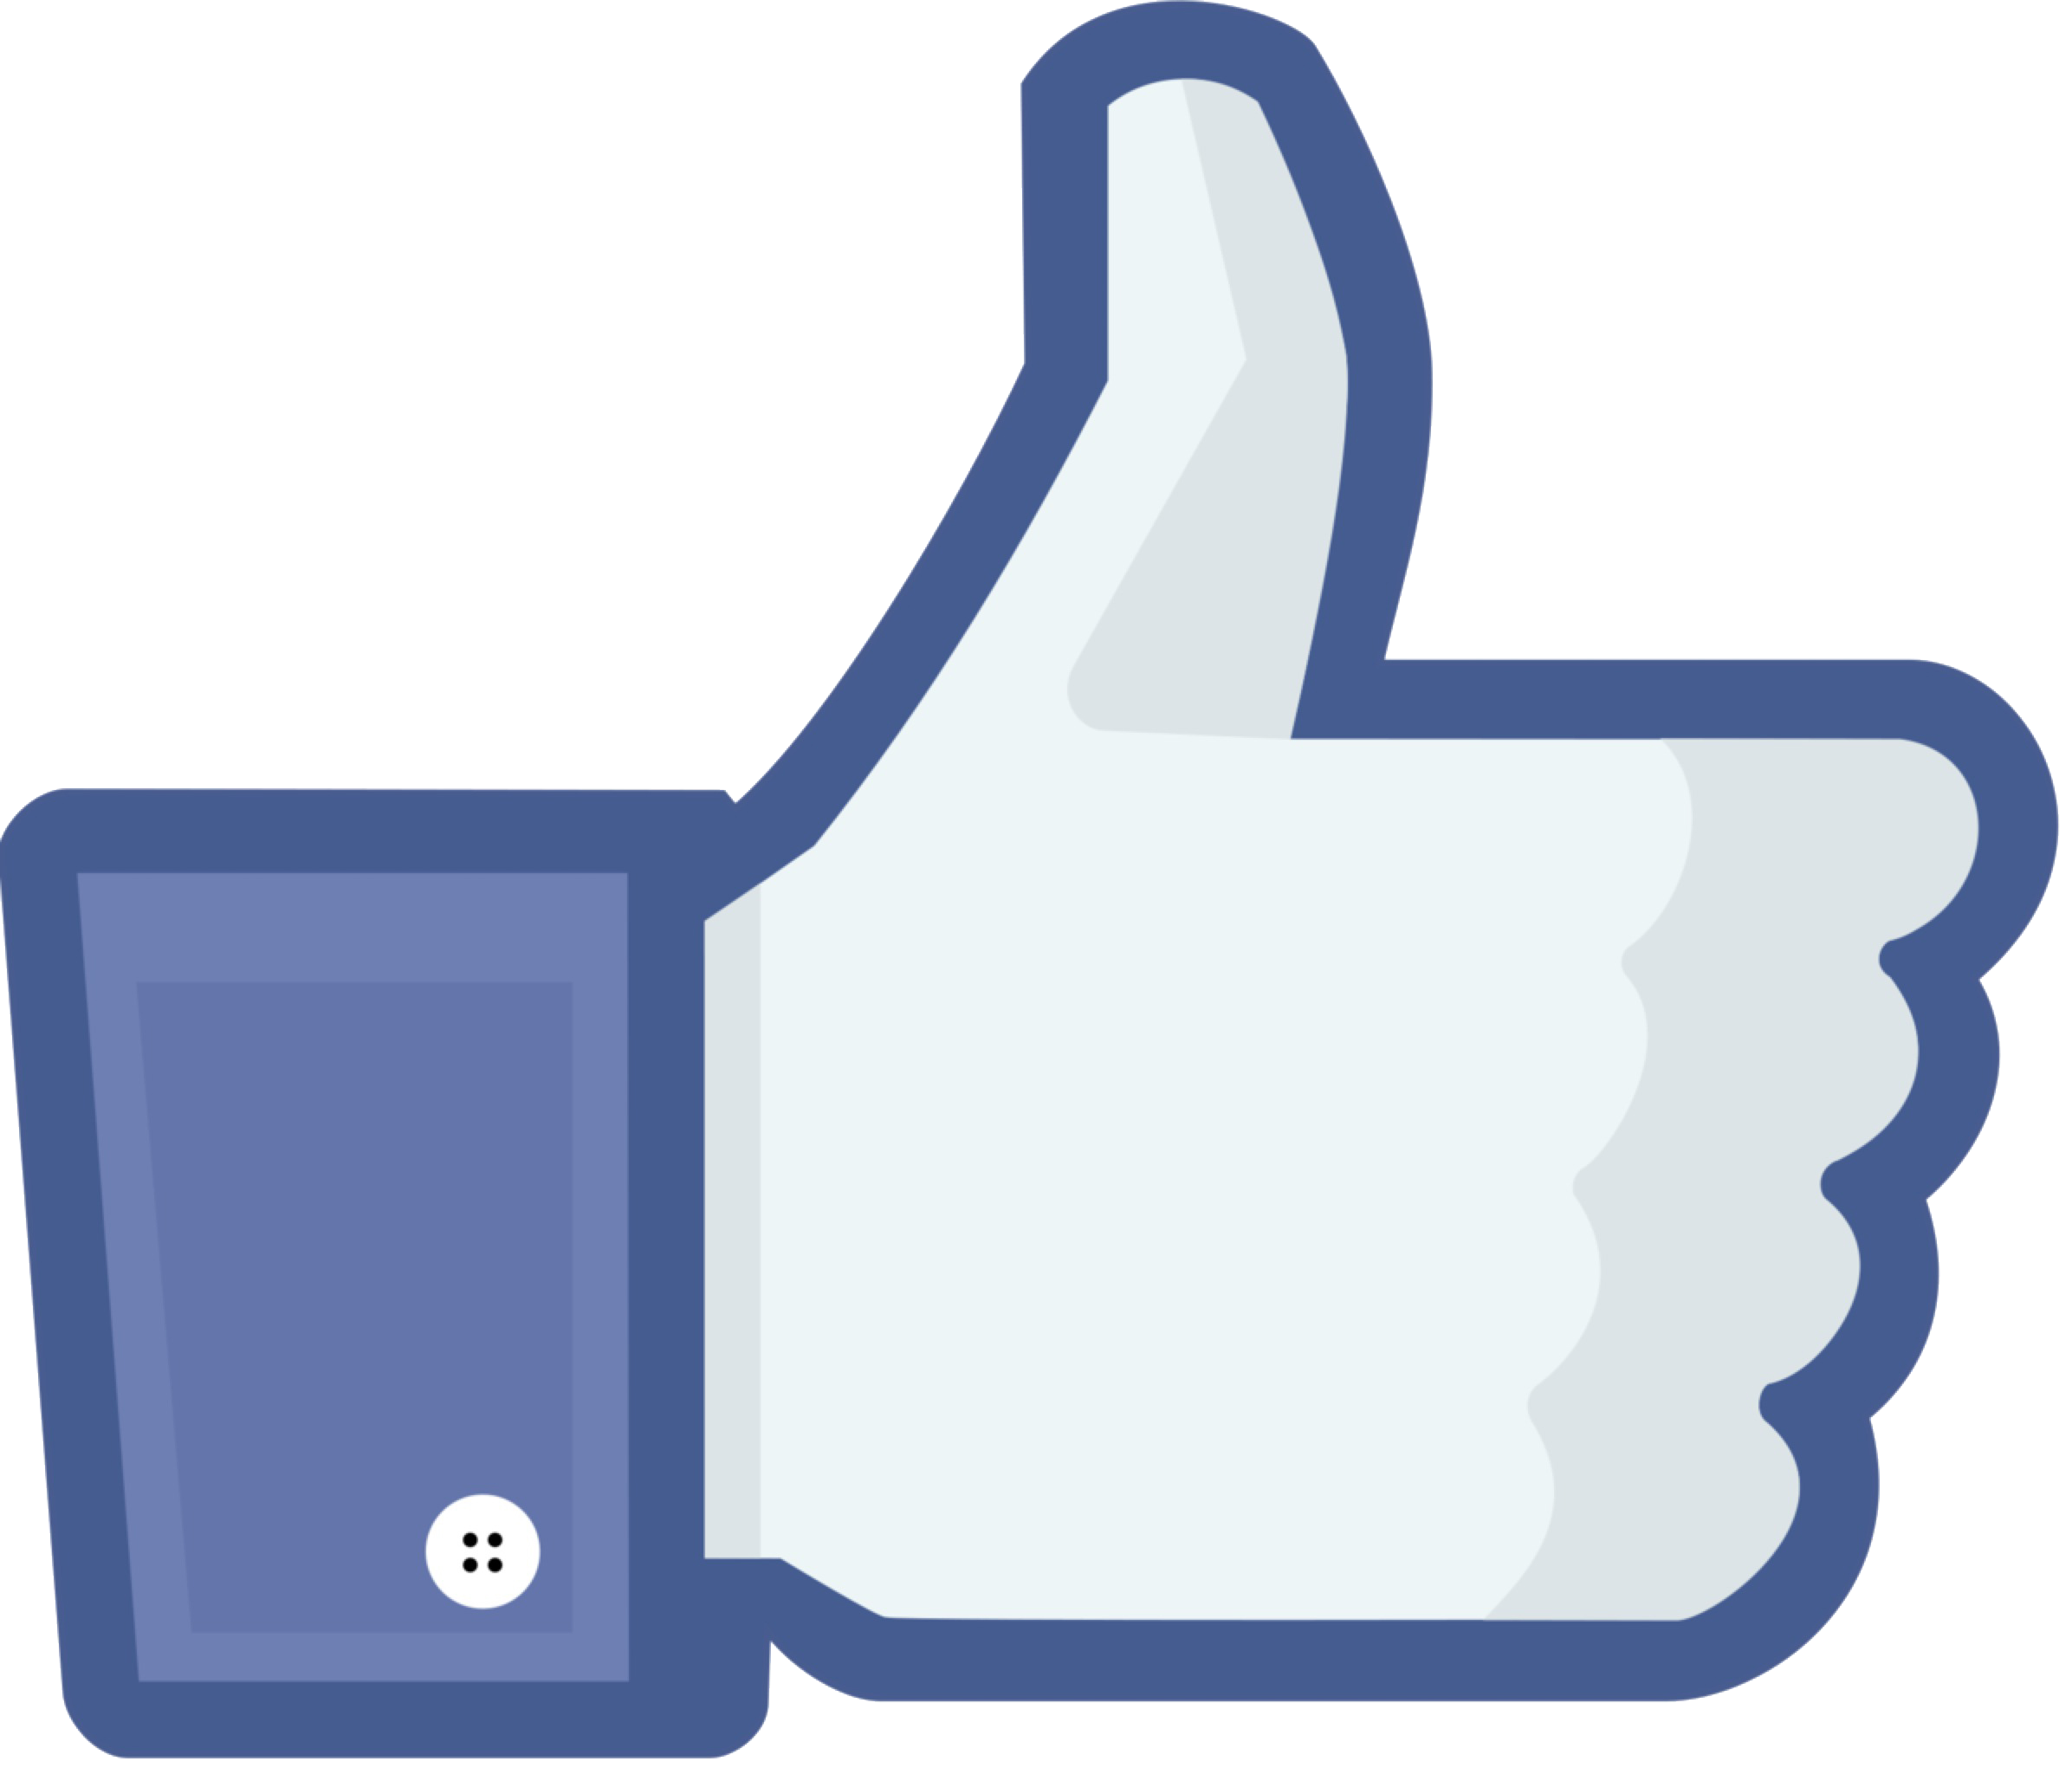 Facebook clipart high resolution. Like png